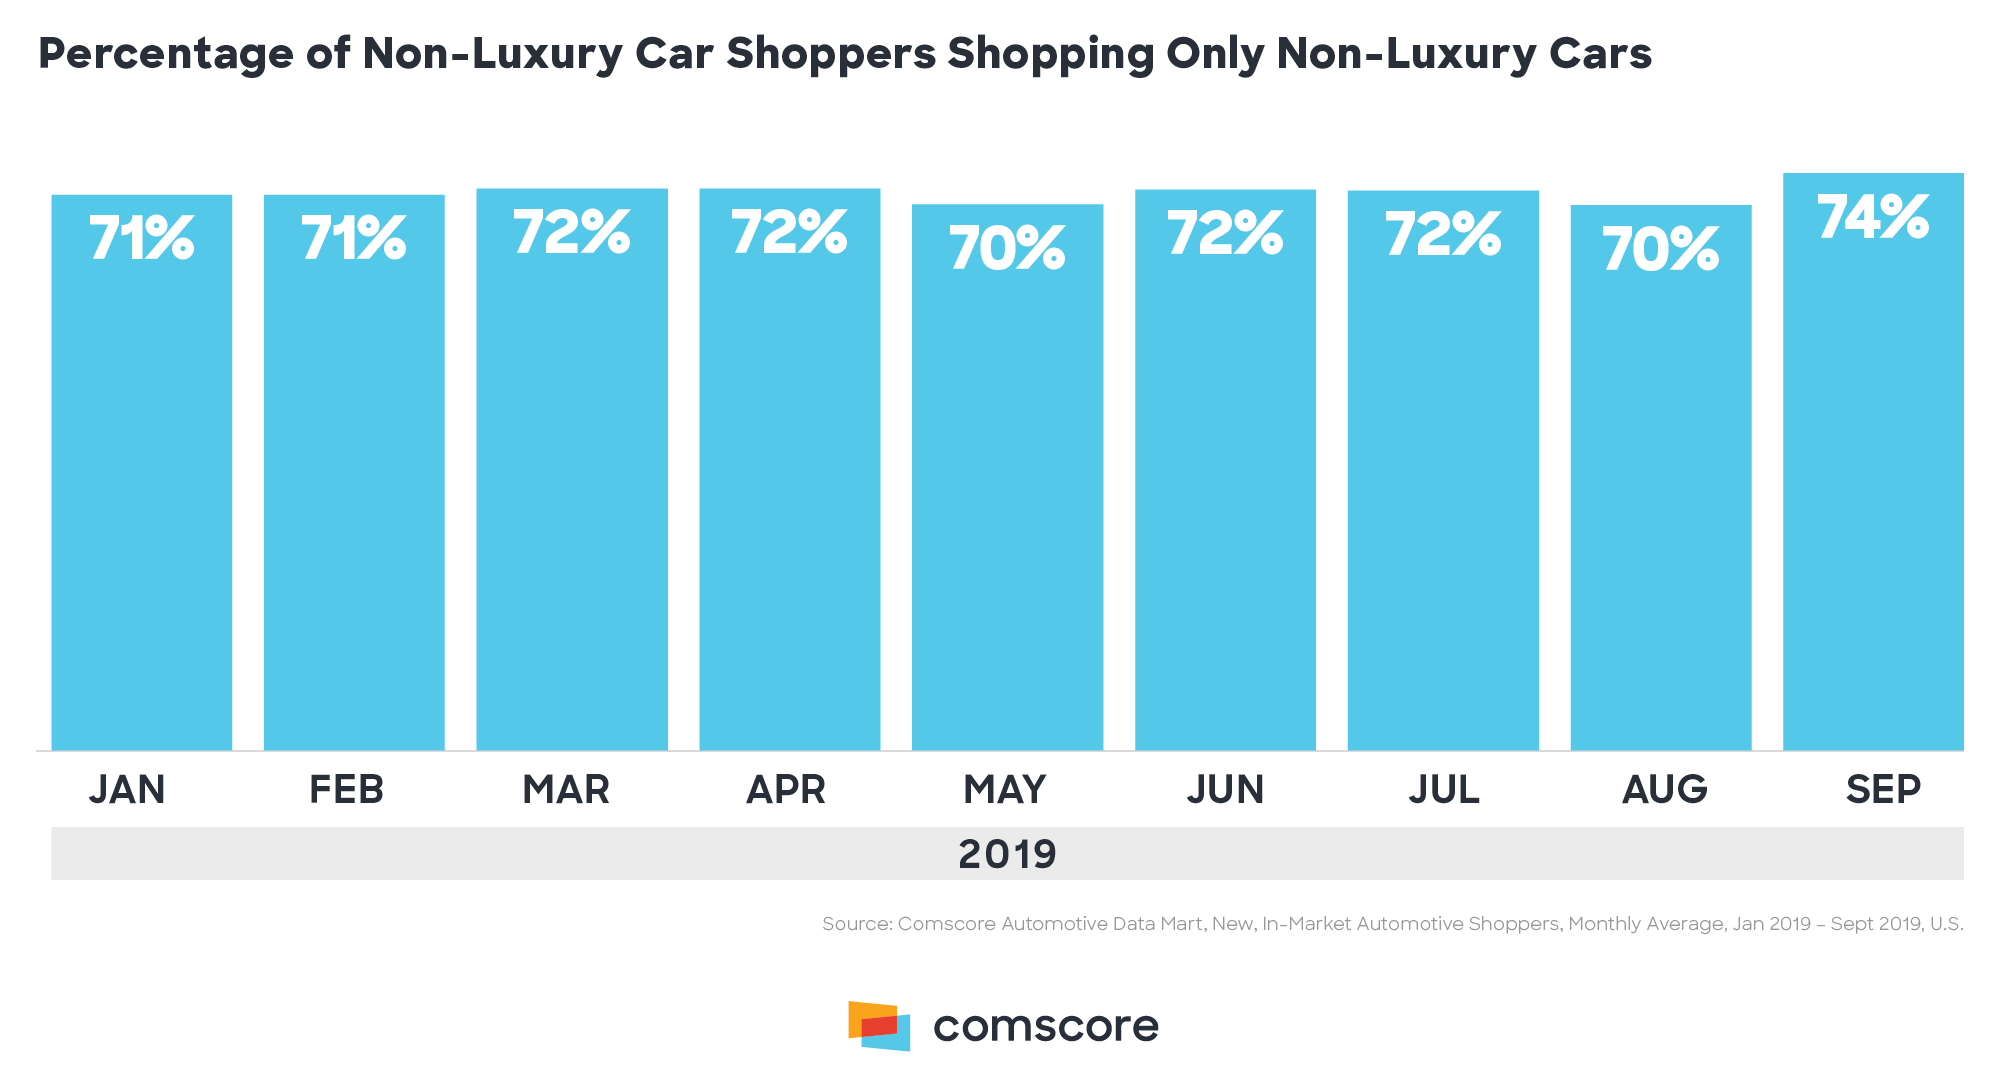 Percentage of Non Luxury Car Shoppers